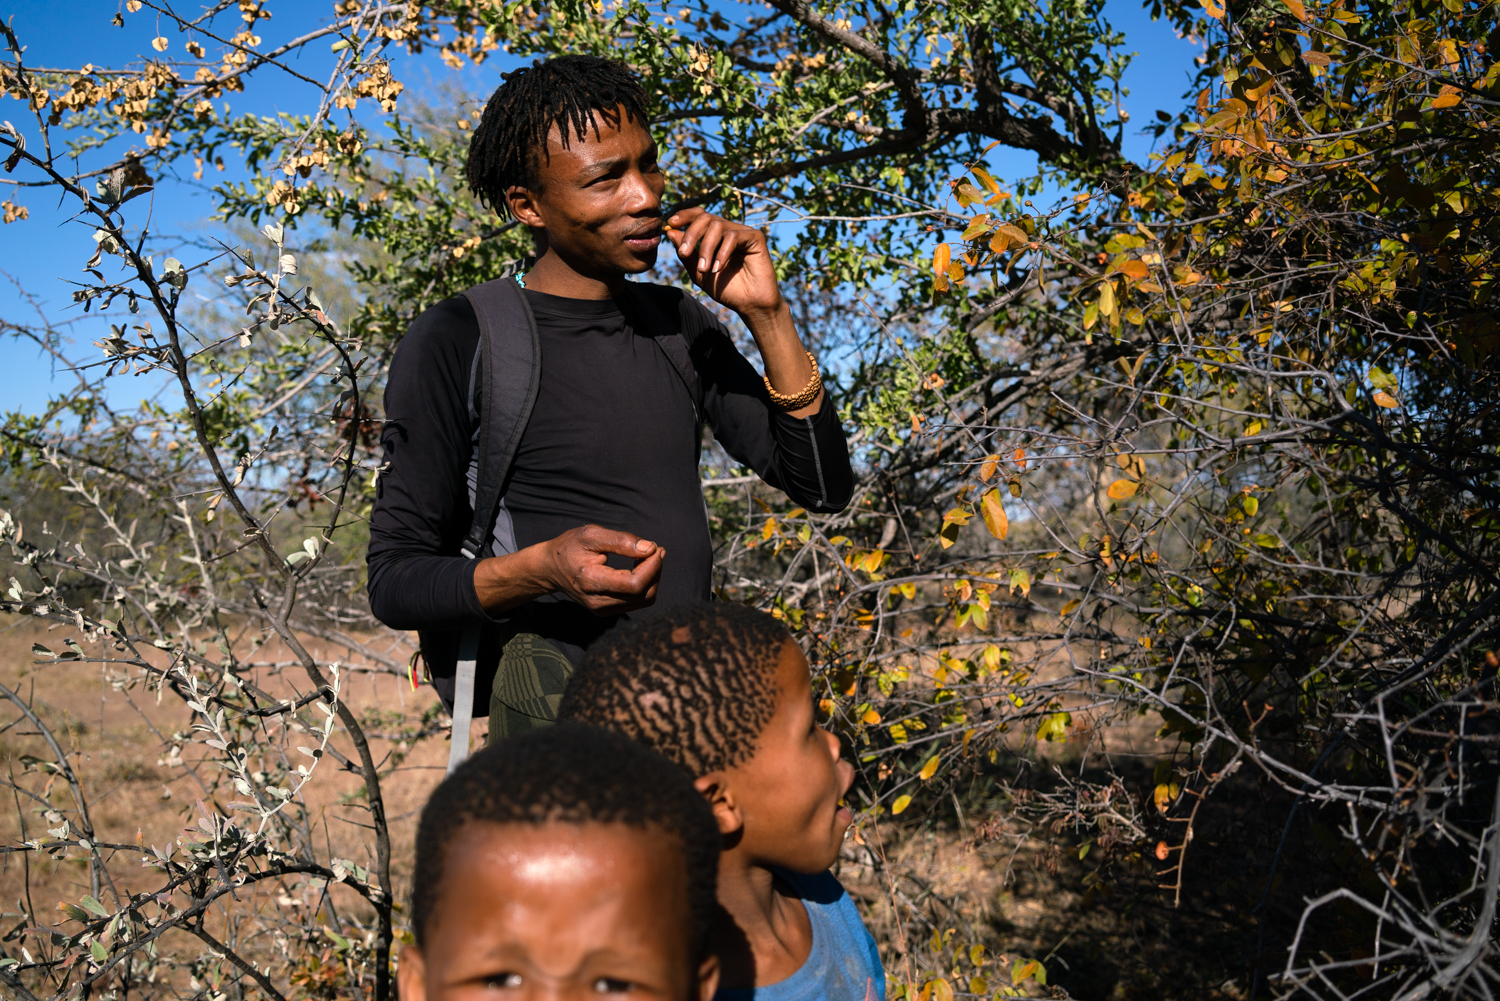 Alphynho eats some berries while on a bush walk with his girlfriend and her nieces and nephews. Gathering berries is a tradition for the San, but many young people reject this practice.